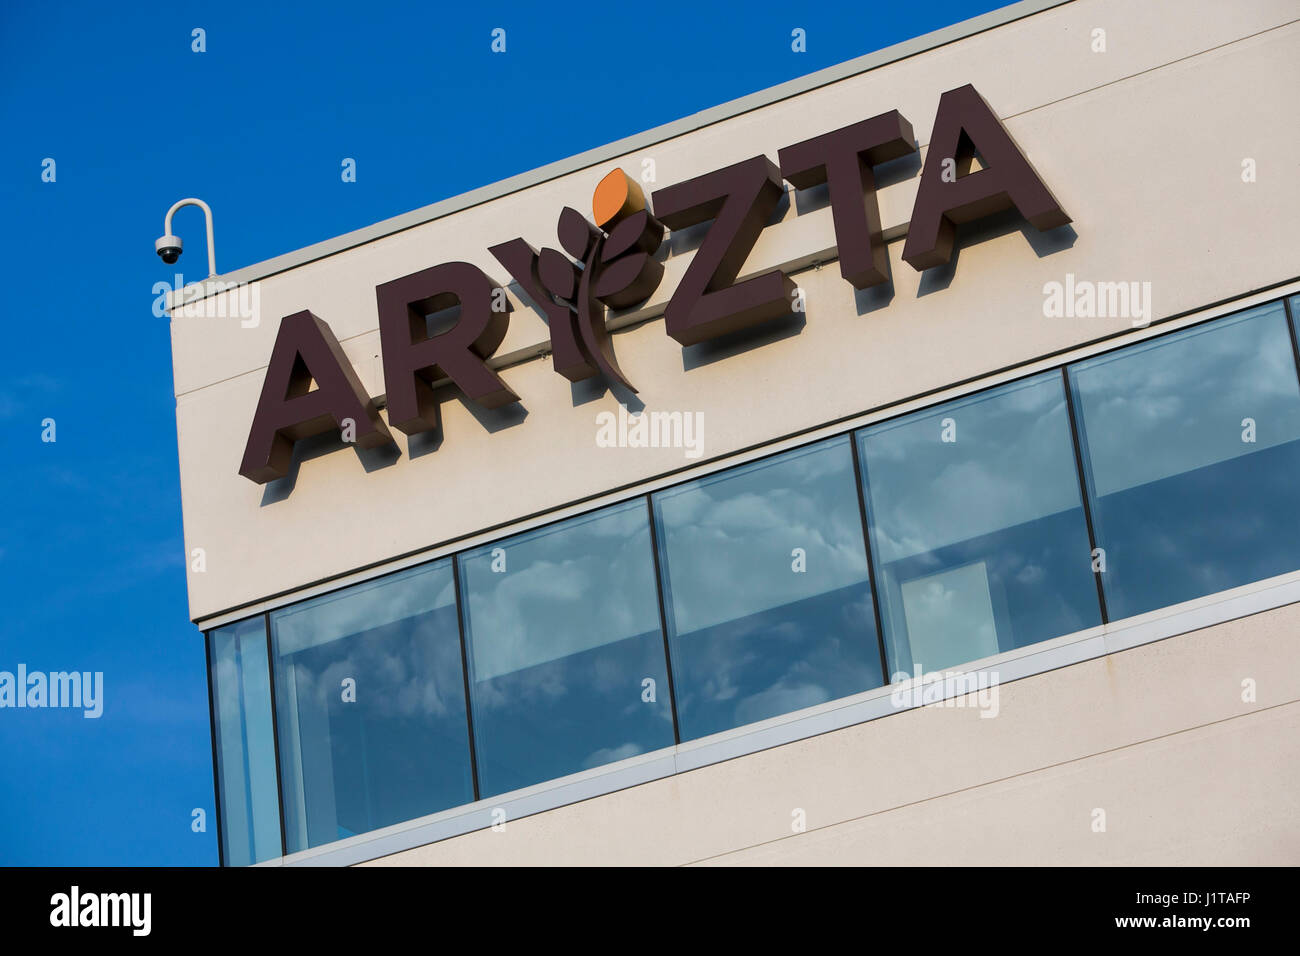 Aryzta High Resolution Stock Photography And Images Alamy